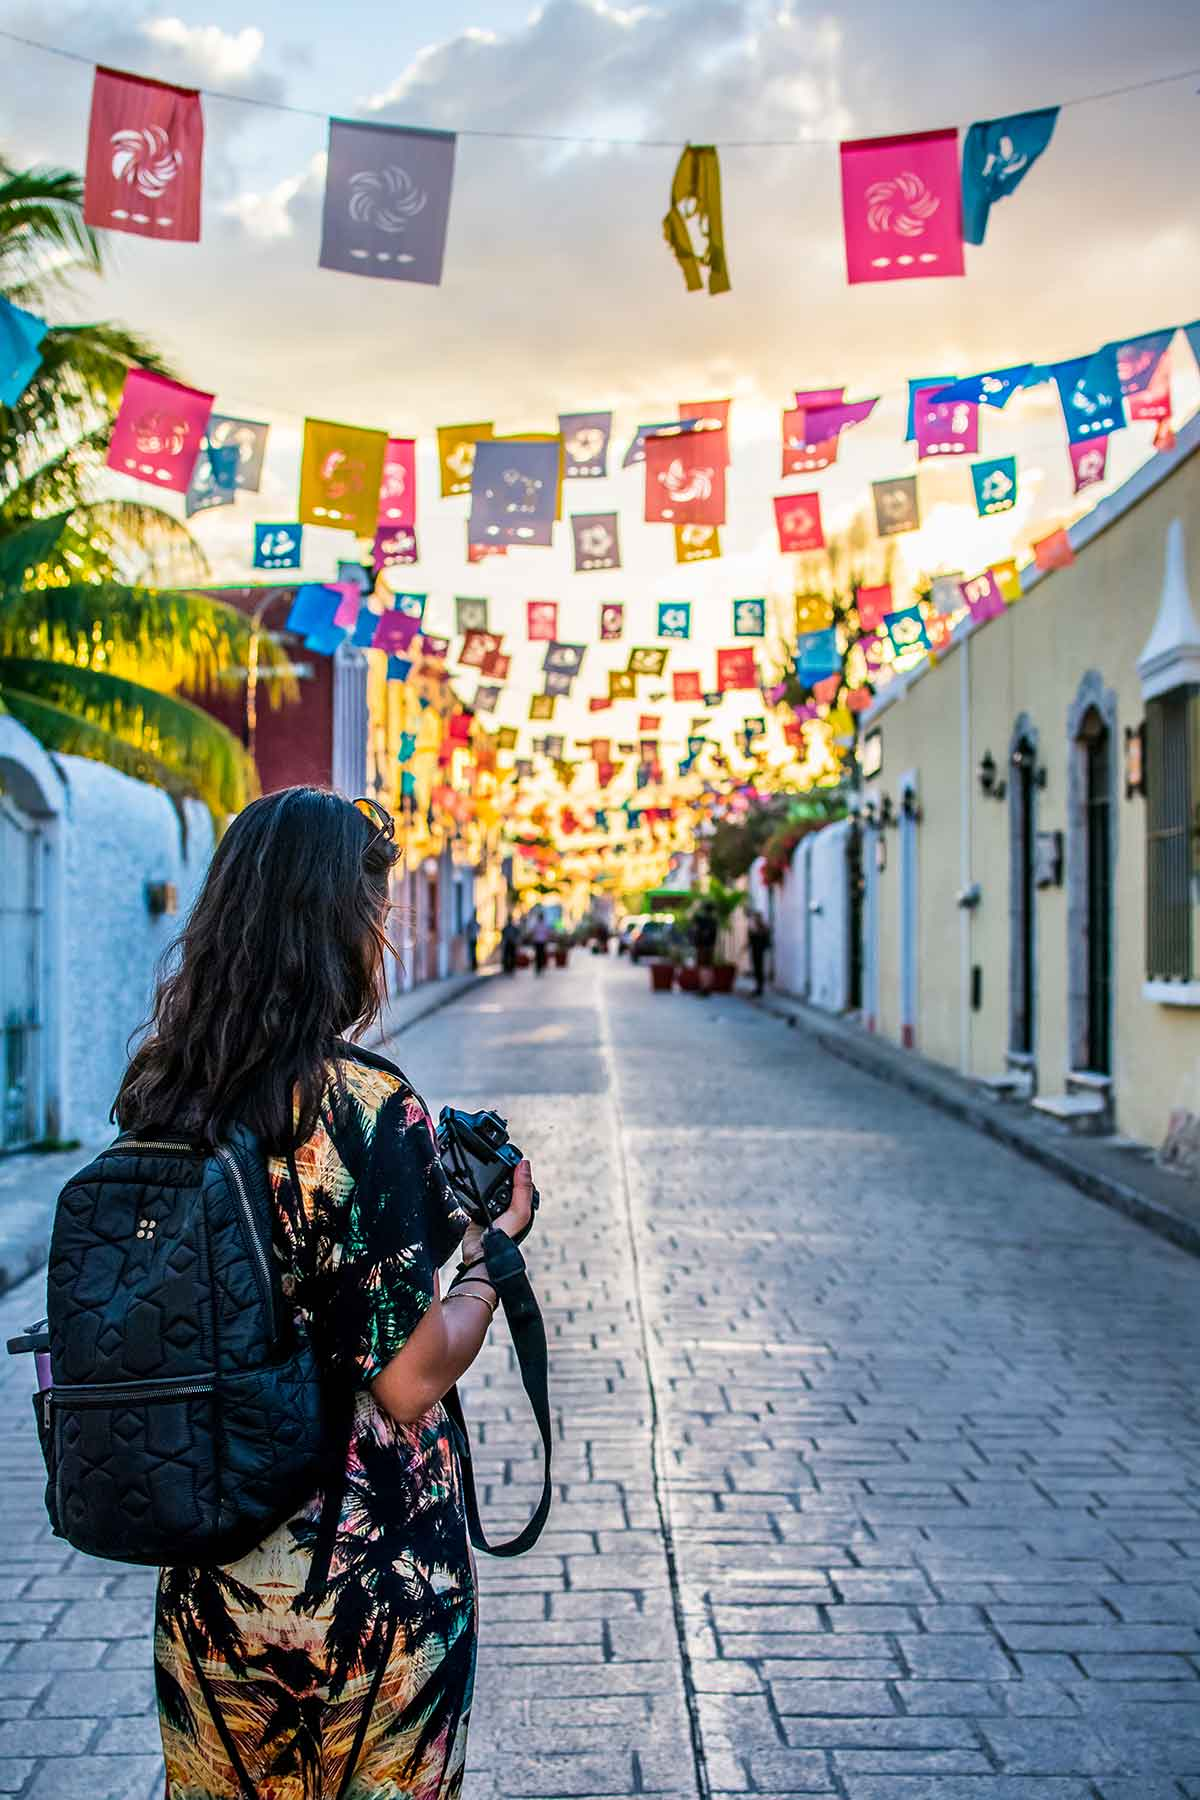 20 EPIC Valladolid Instagram spots for travelling Mexico. A woman stares down Calle de los Frailes street bunting